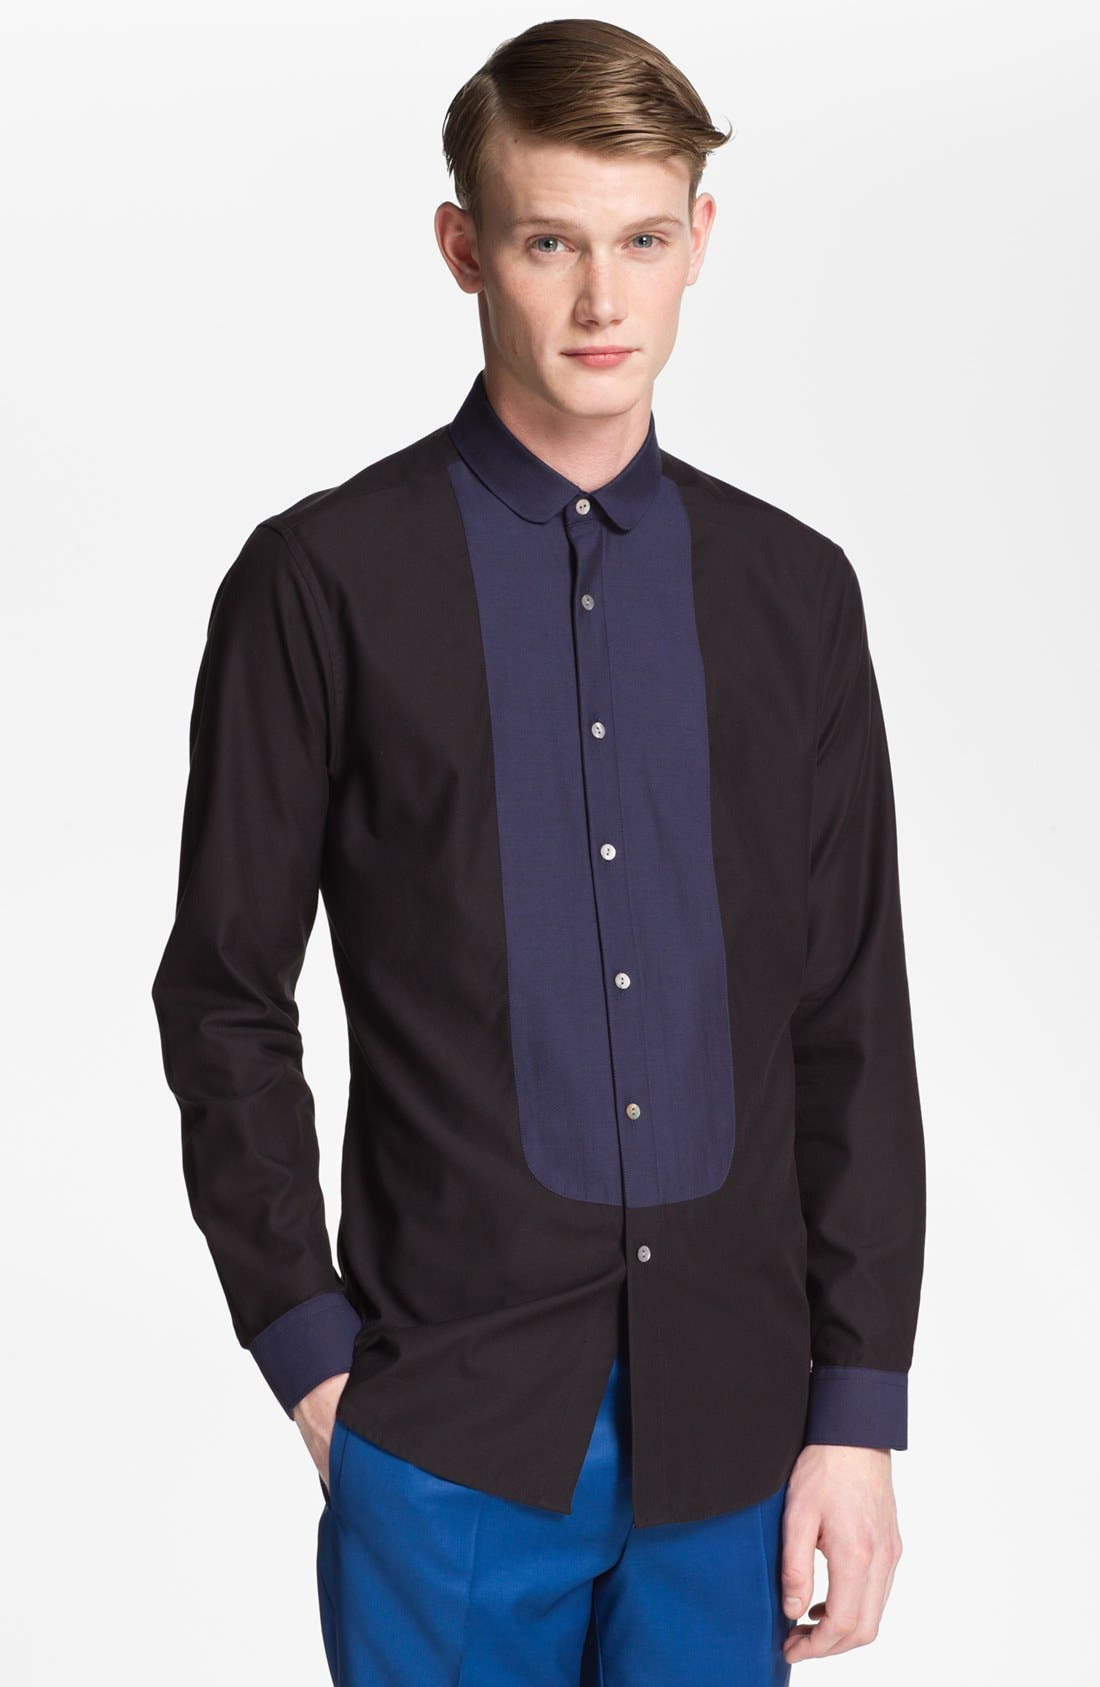 Alternate Image 1 Selected - Topman 'Lux Collection' Bib Front Dress Shirt